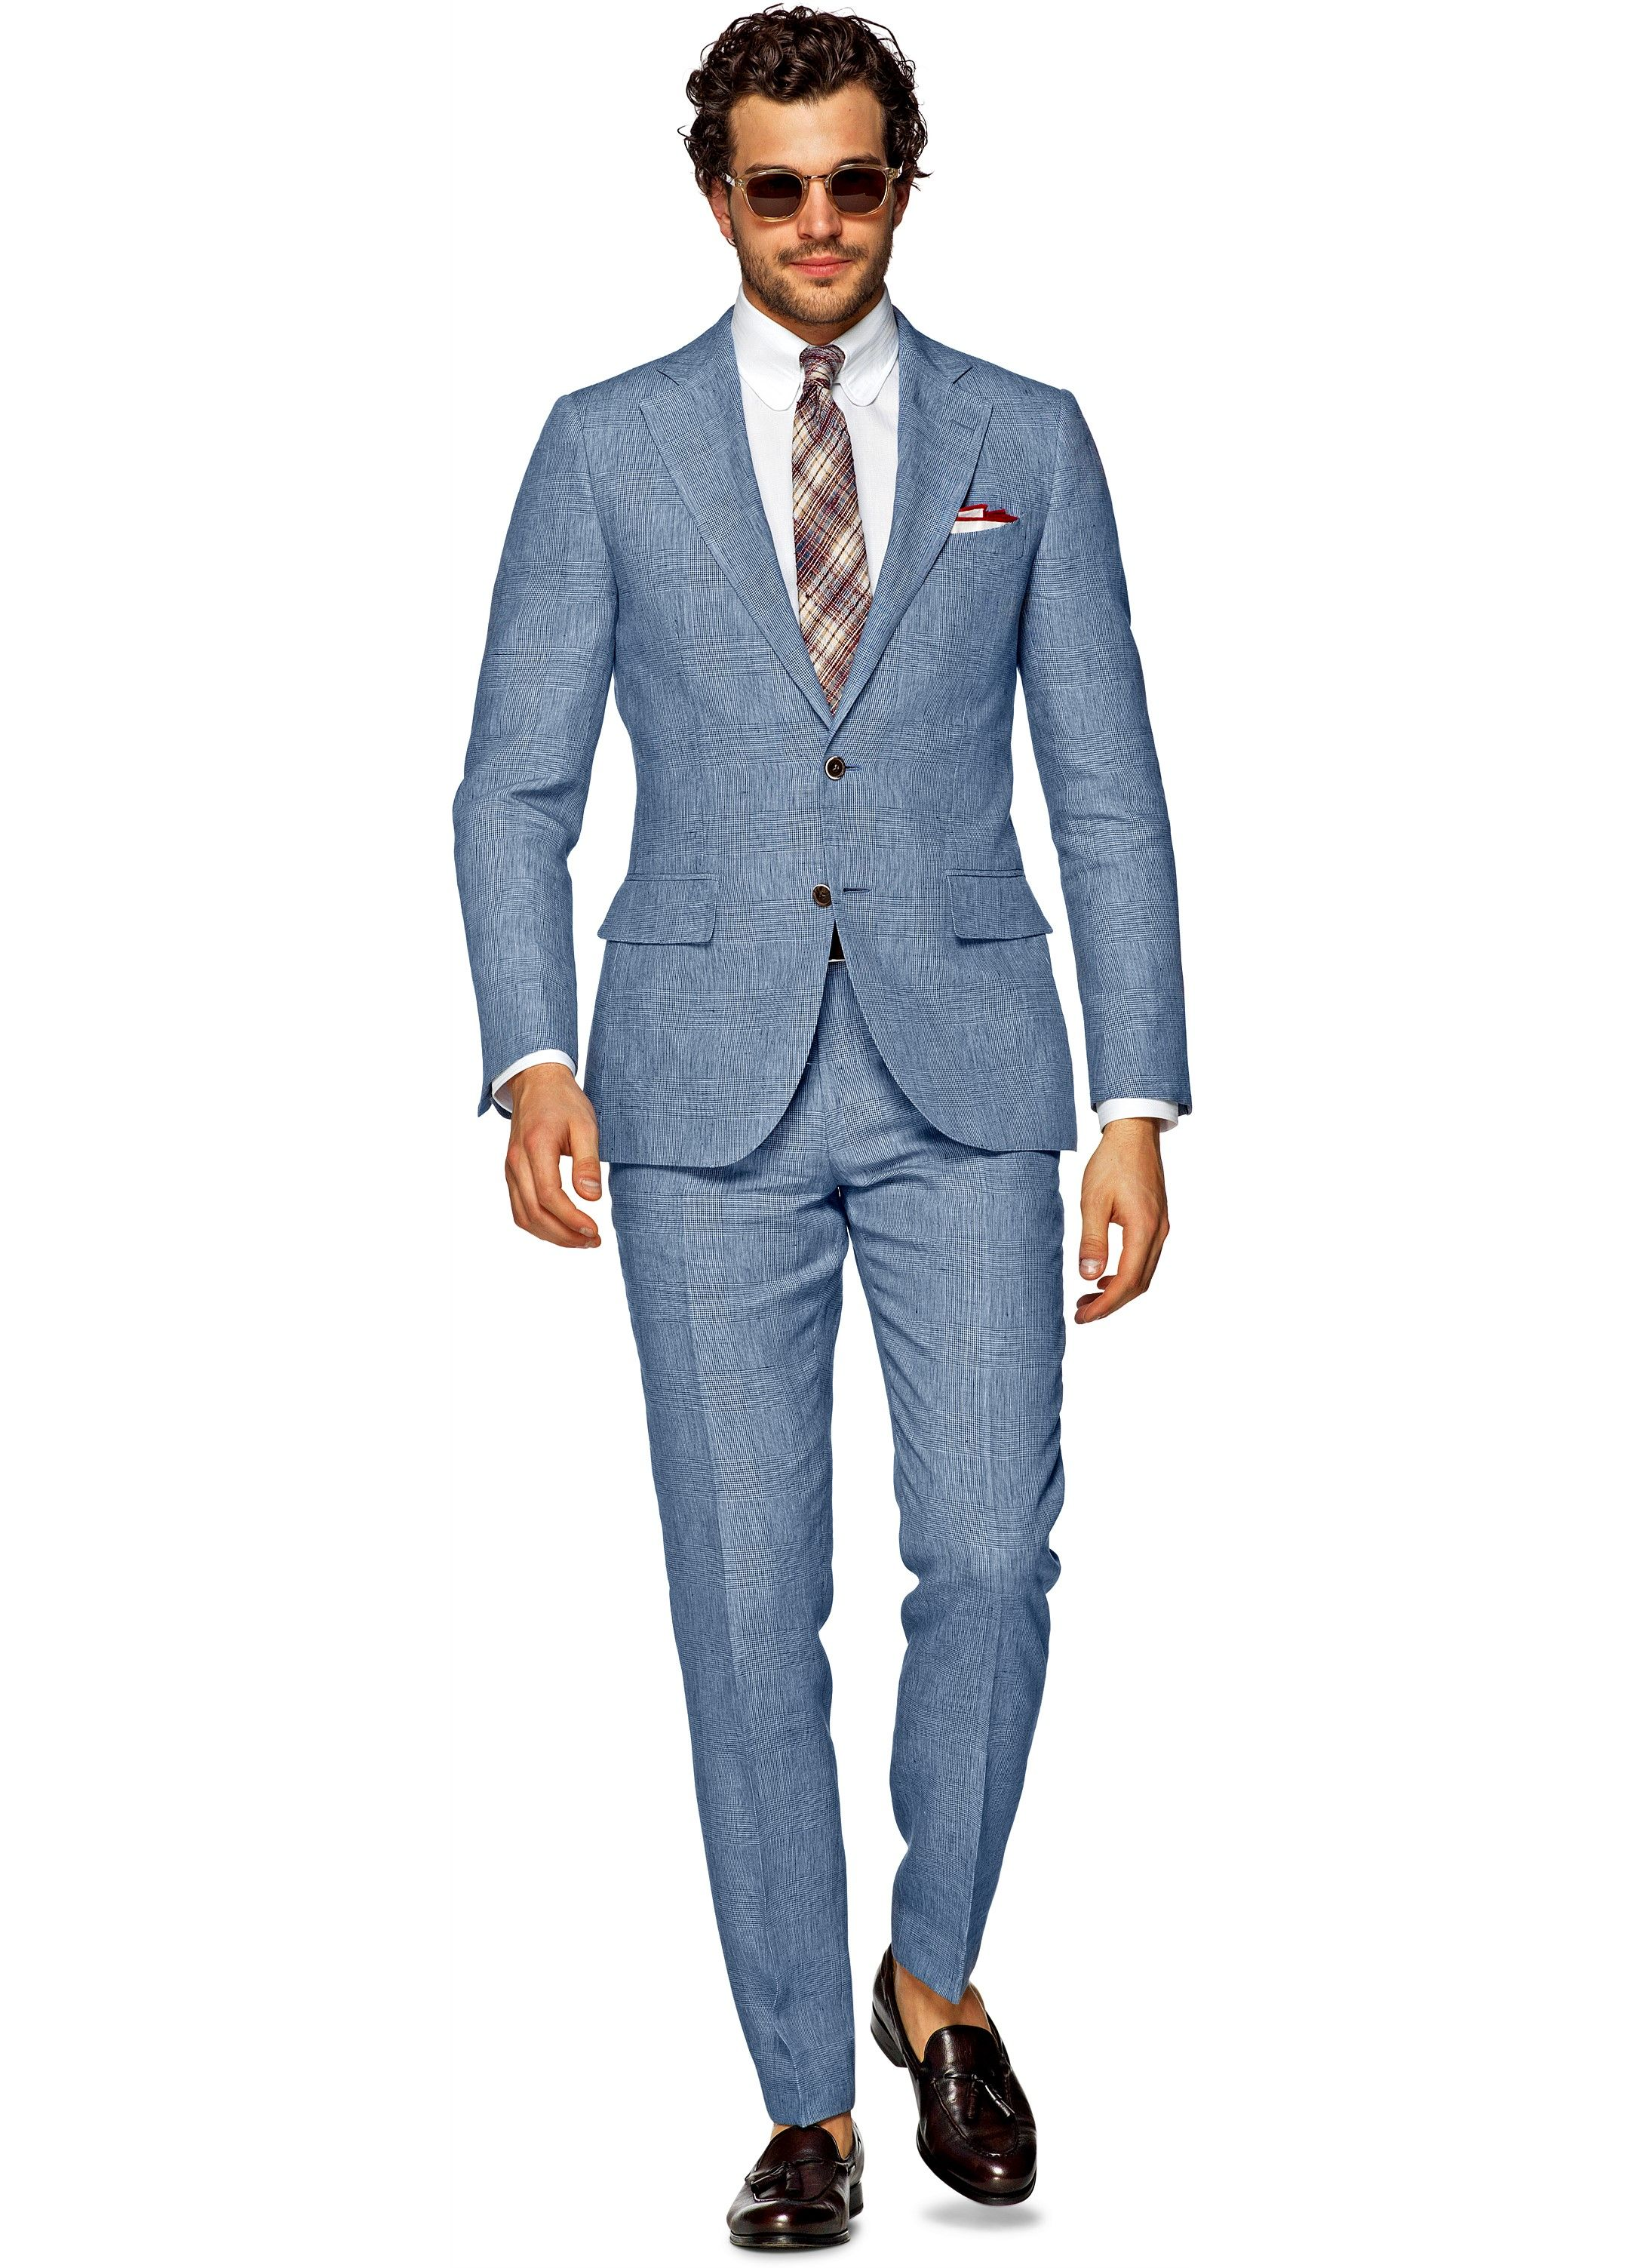 Suit Light Blue Check Lazio P4235i | Suitsupply Online Store ...